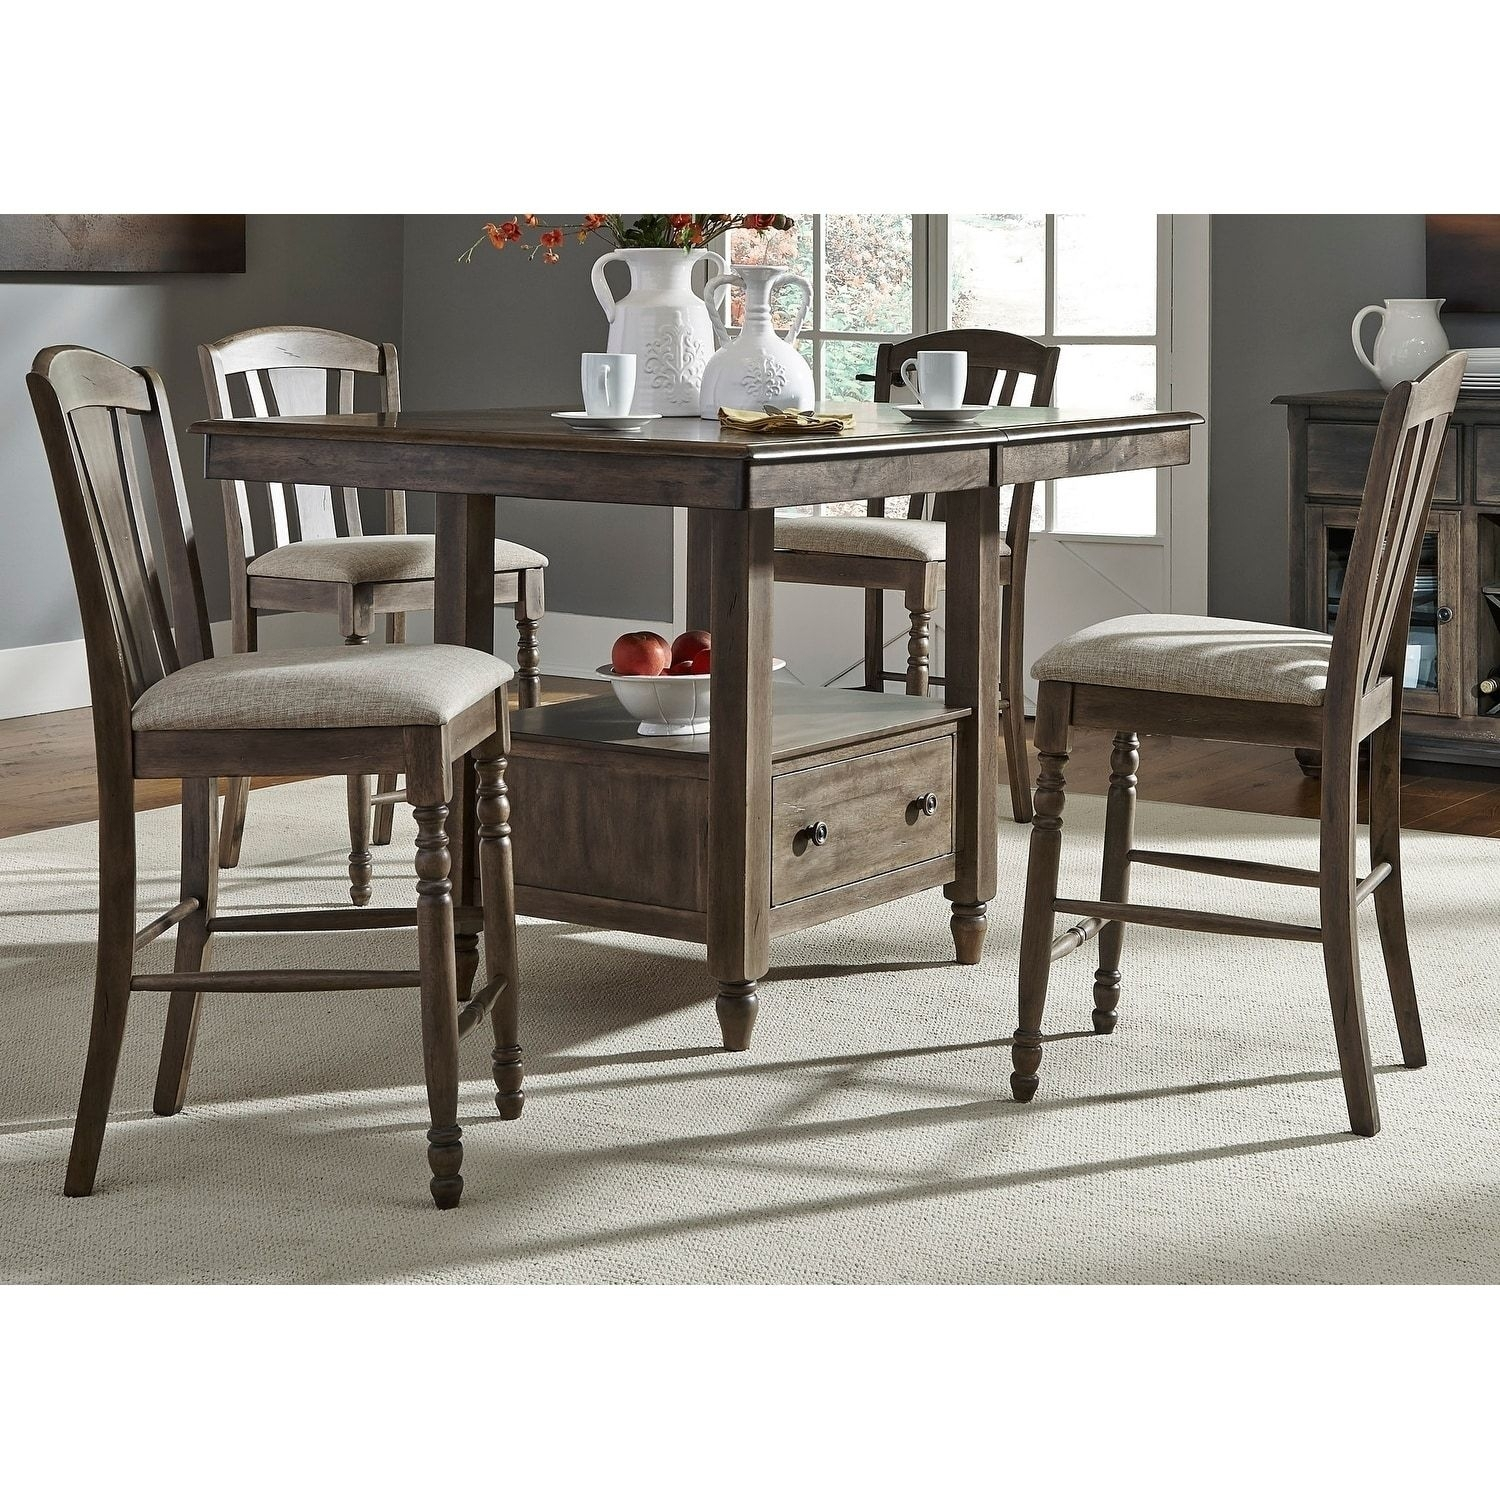 Liberty Candlewood Weather Grey 7 Piece Slat Back Gathering Dinette In Most Recent Combs 7 Piece Dining Sets With  Mindy Slipcovered Chairs (Photo 16 of 20)